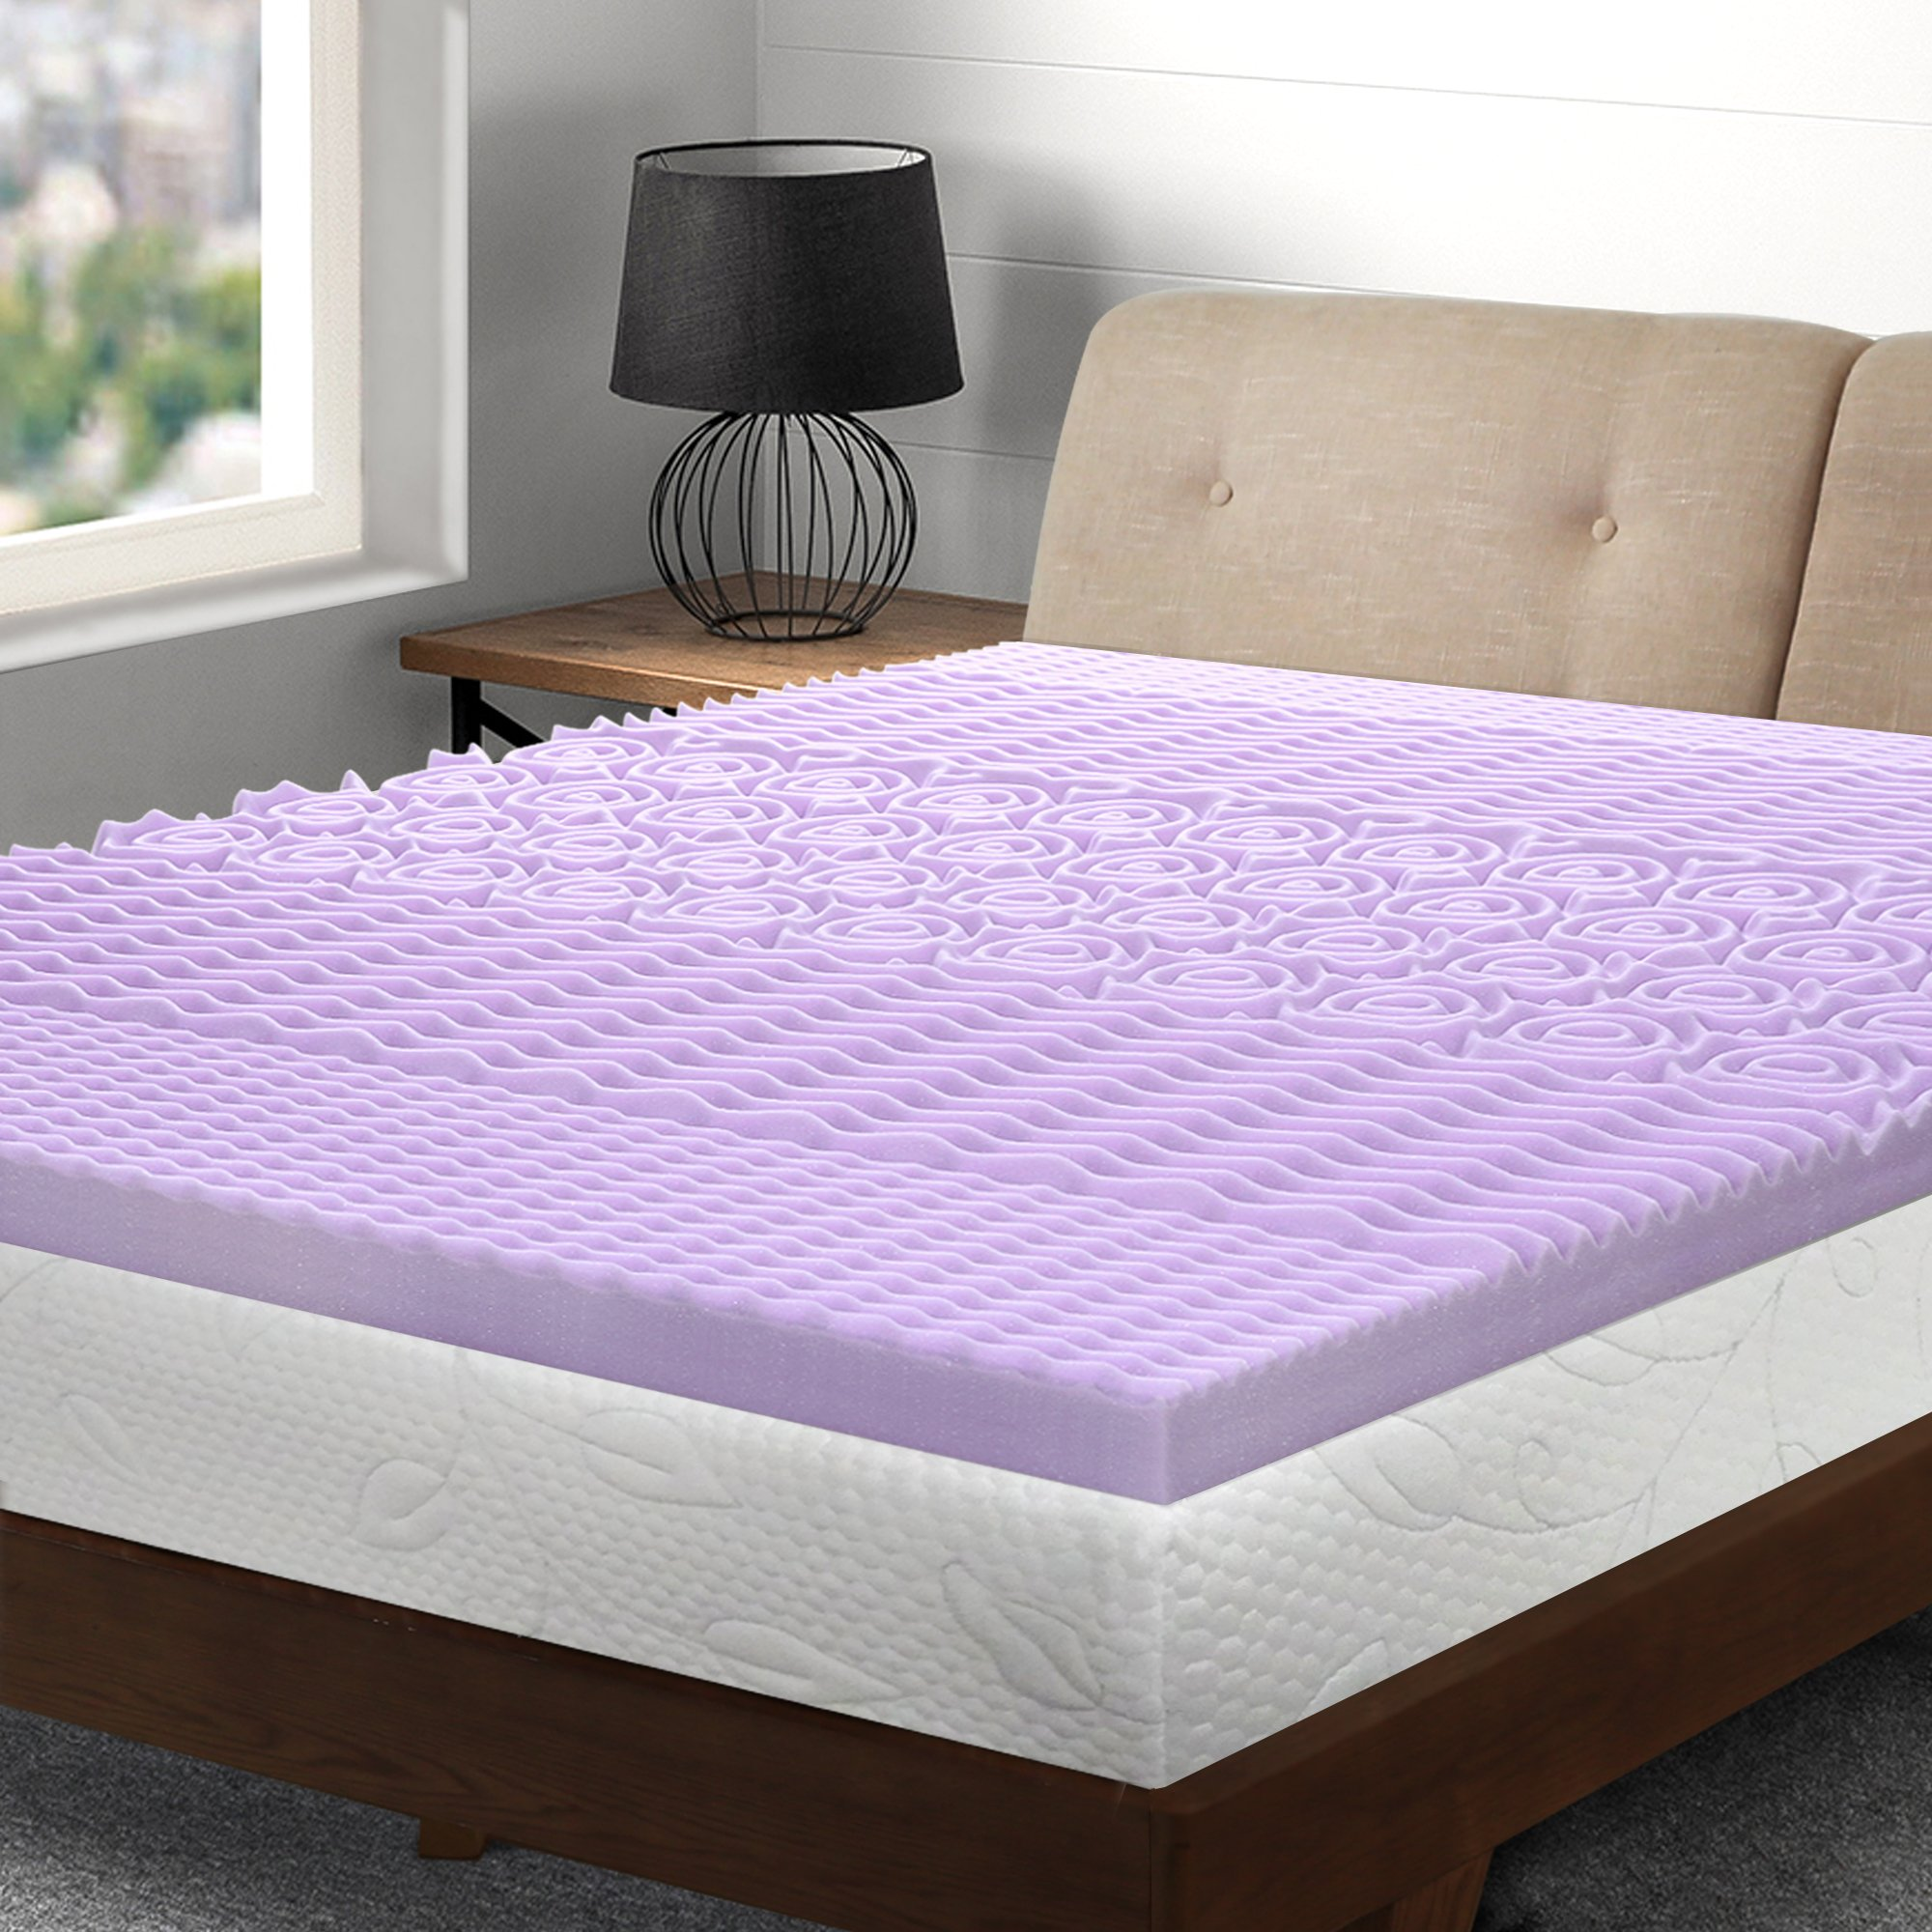 Best Price Mattress Twin Mattress Topper - 3 Inch 5-Zone Memory Foam Bed Topper with Lavender Infused Cooling Mattress Pad, Twin Size